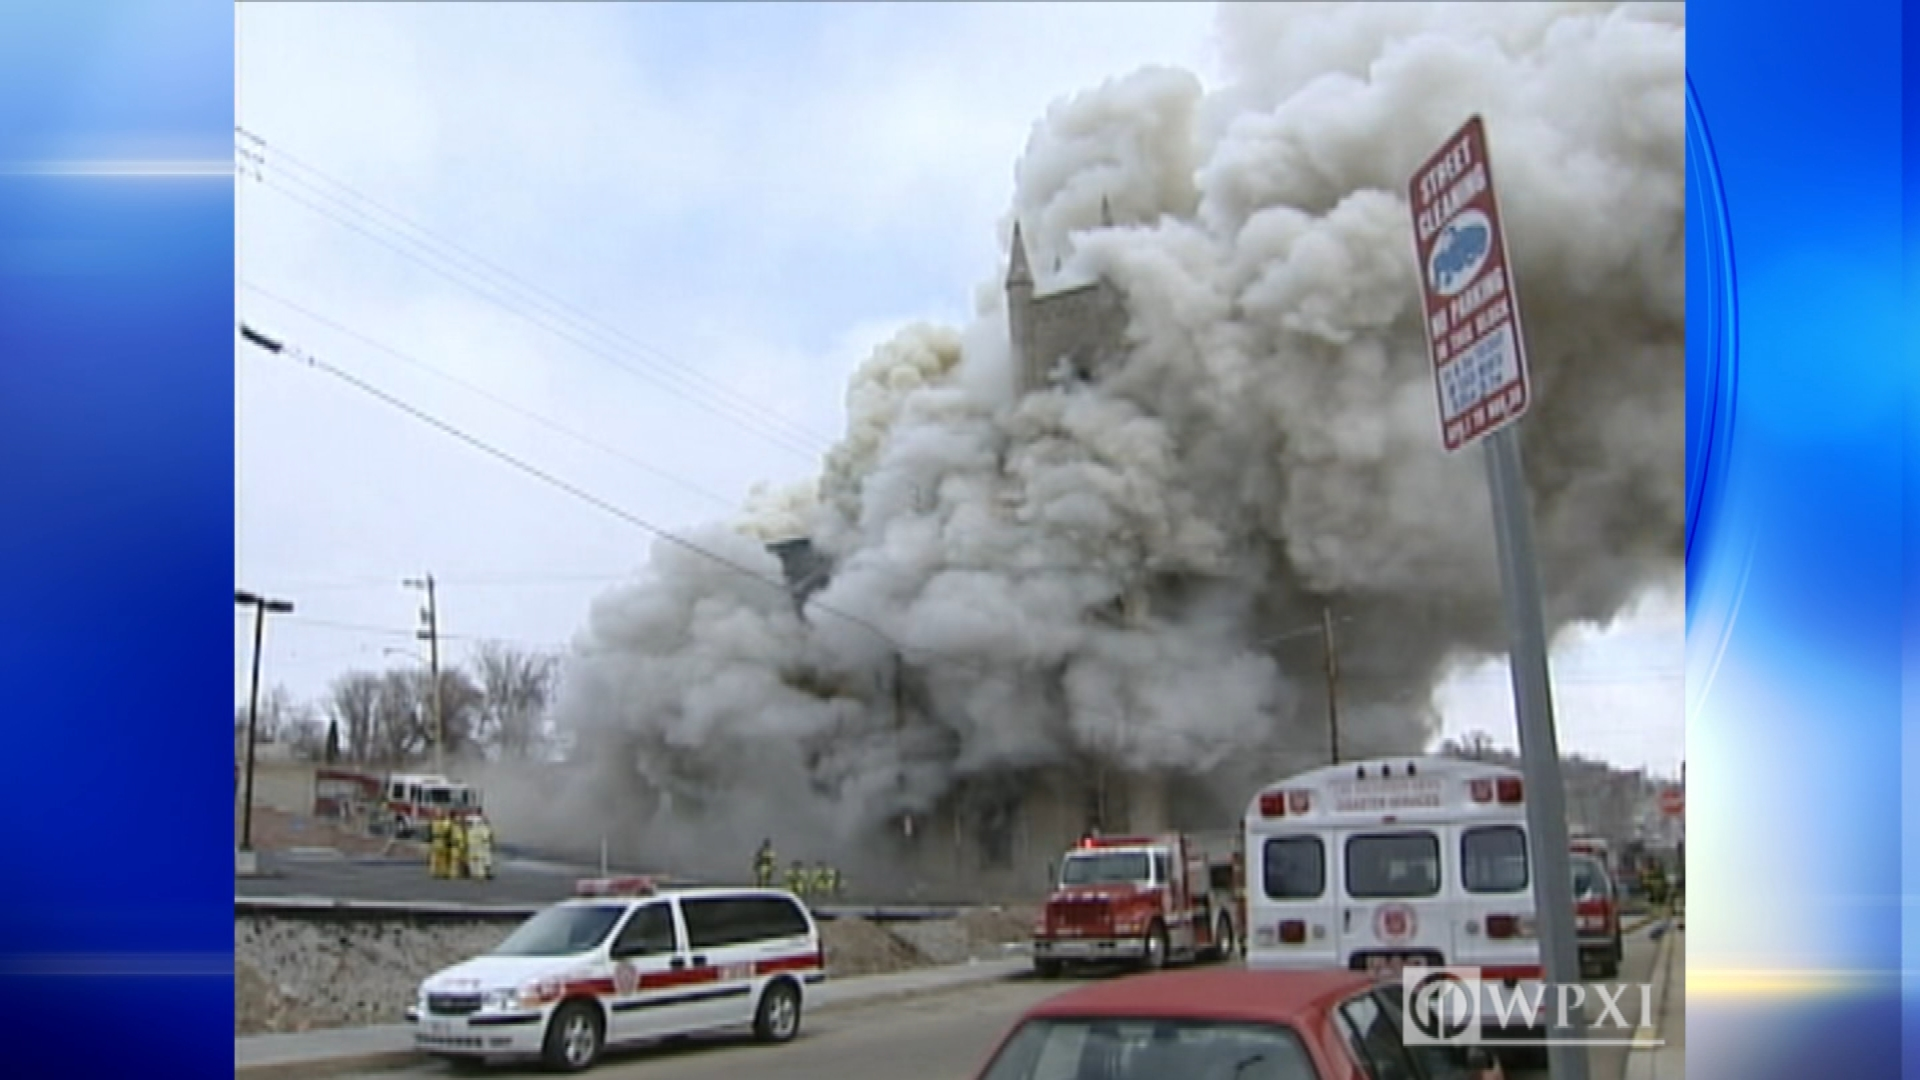 ON THIS DAY: March 13, 2004, Two firefighters killed as fire destroys Ebenezer Baptist Church